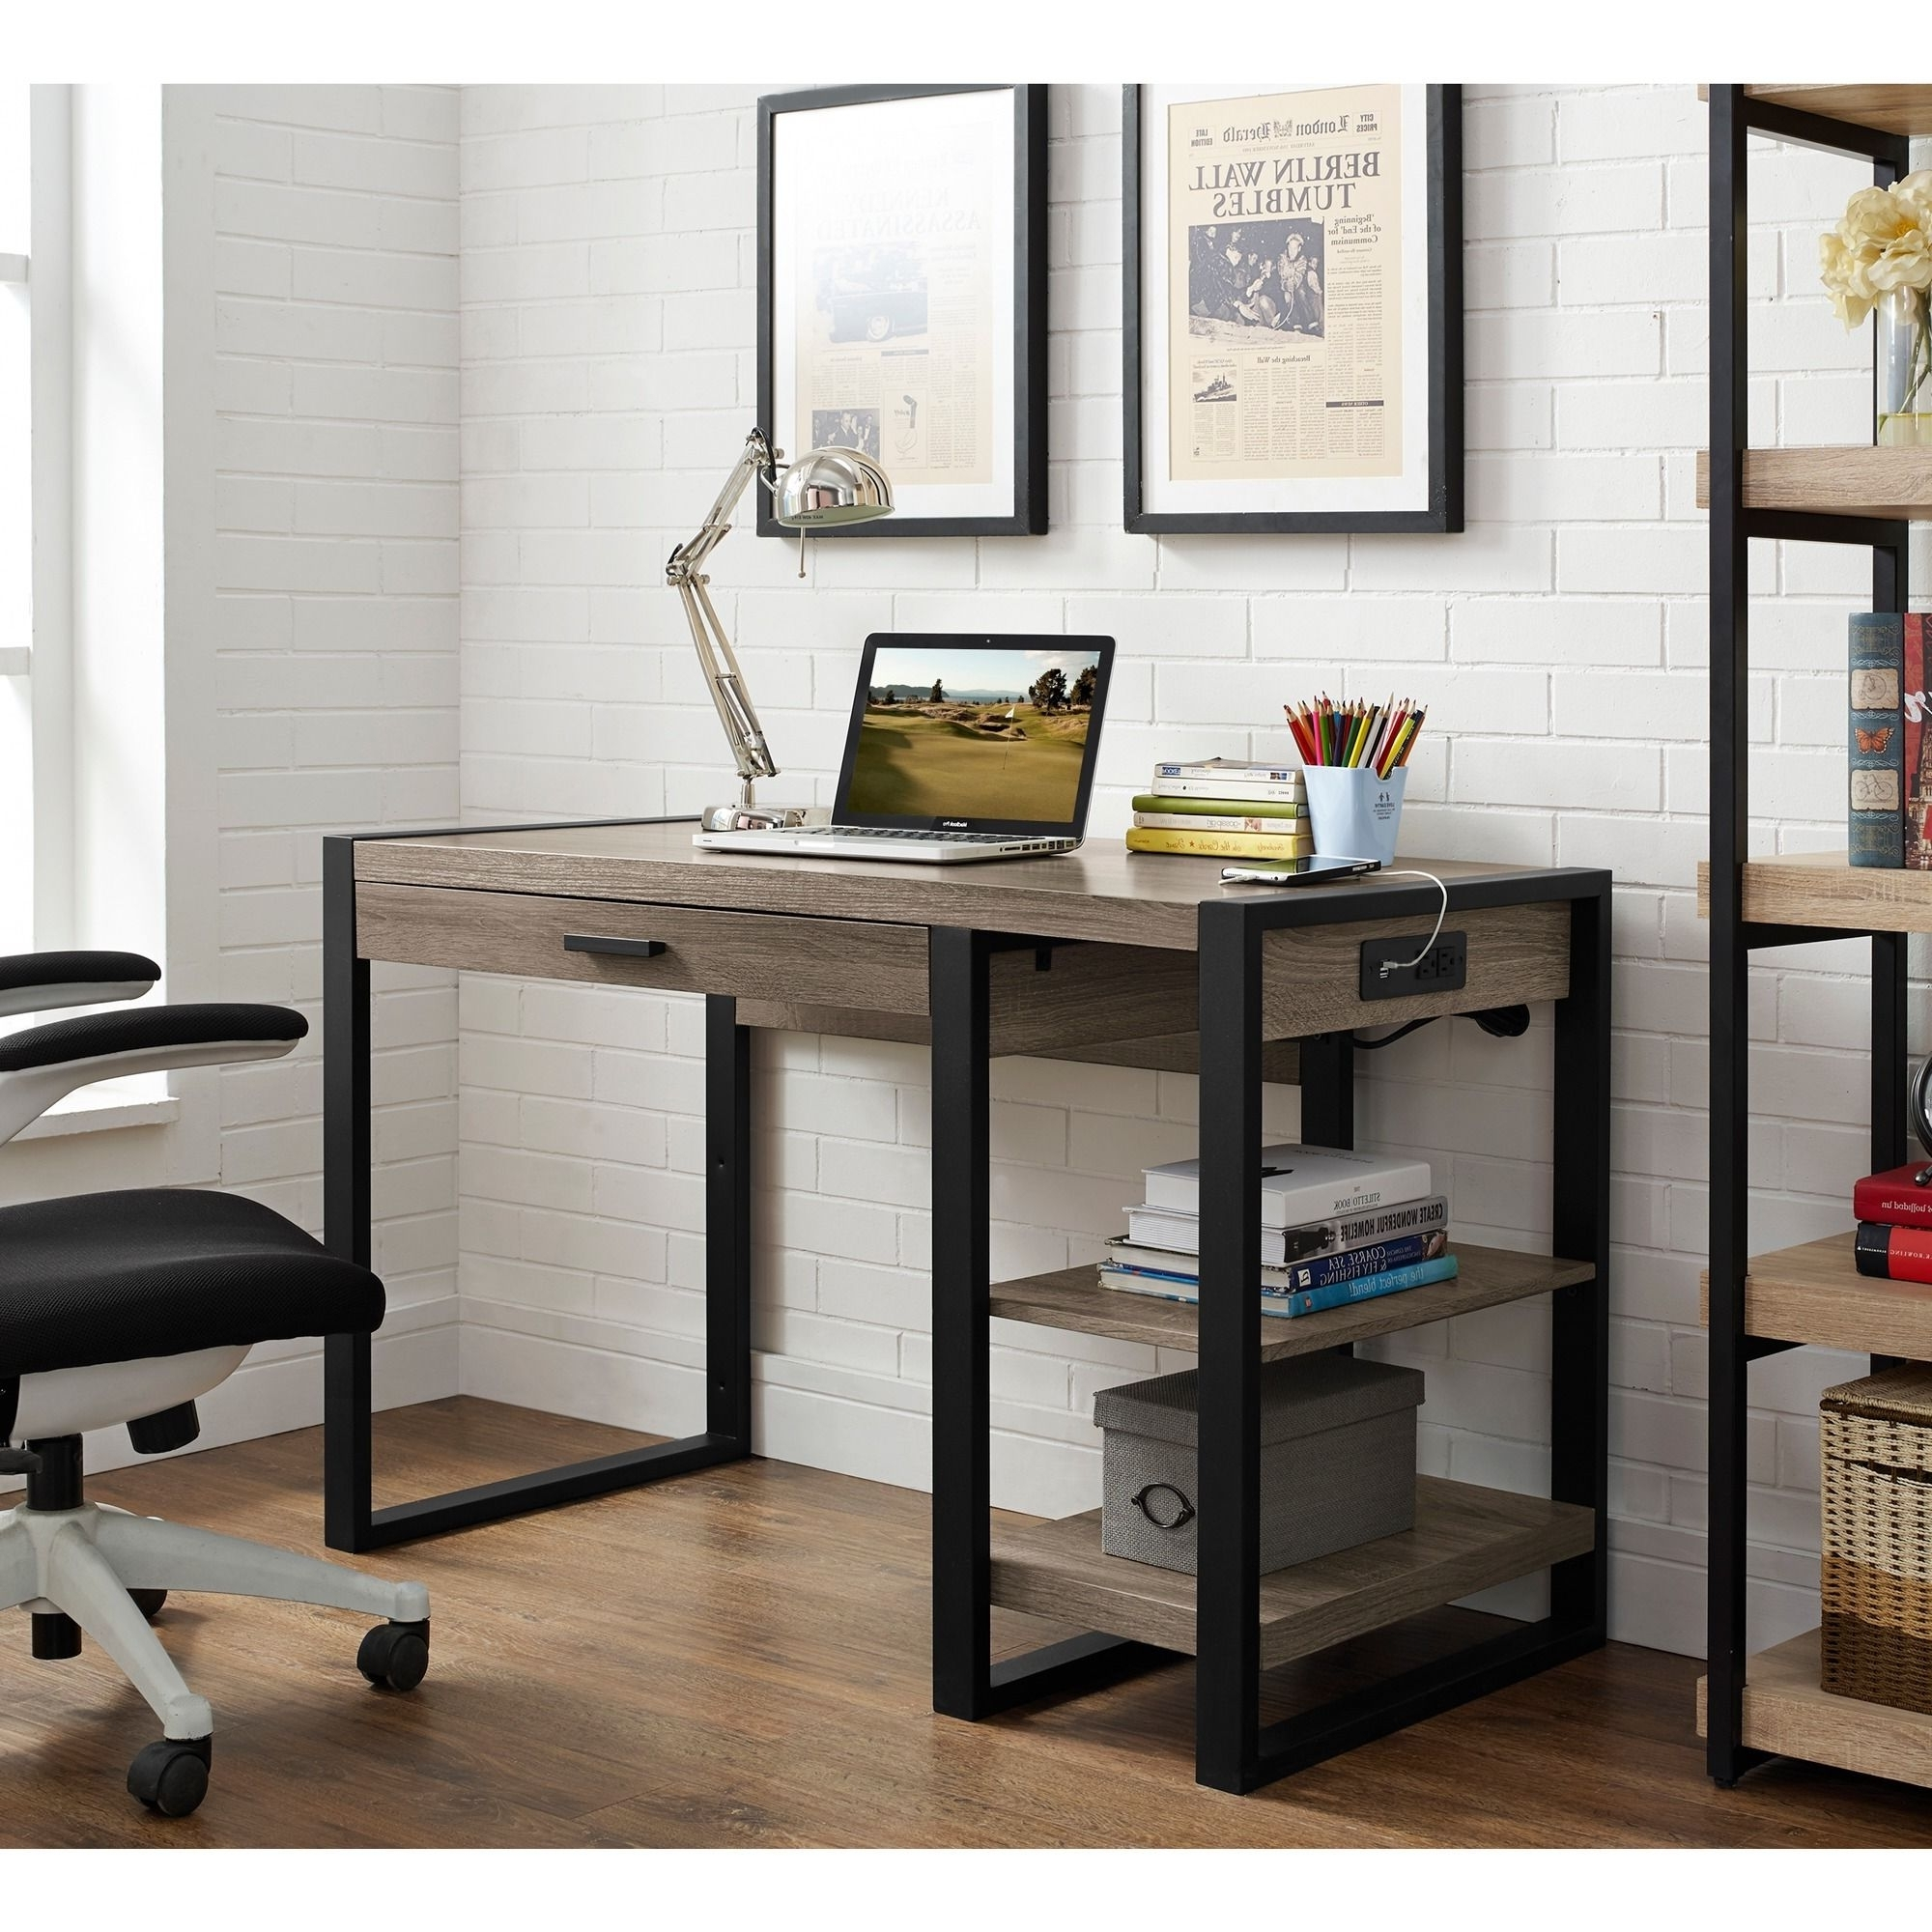 Computer Desks With Usb Ports Regarding Most Recent Complete Your Home Office With This Urban Tech Computer Desk (View 5 of 20)